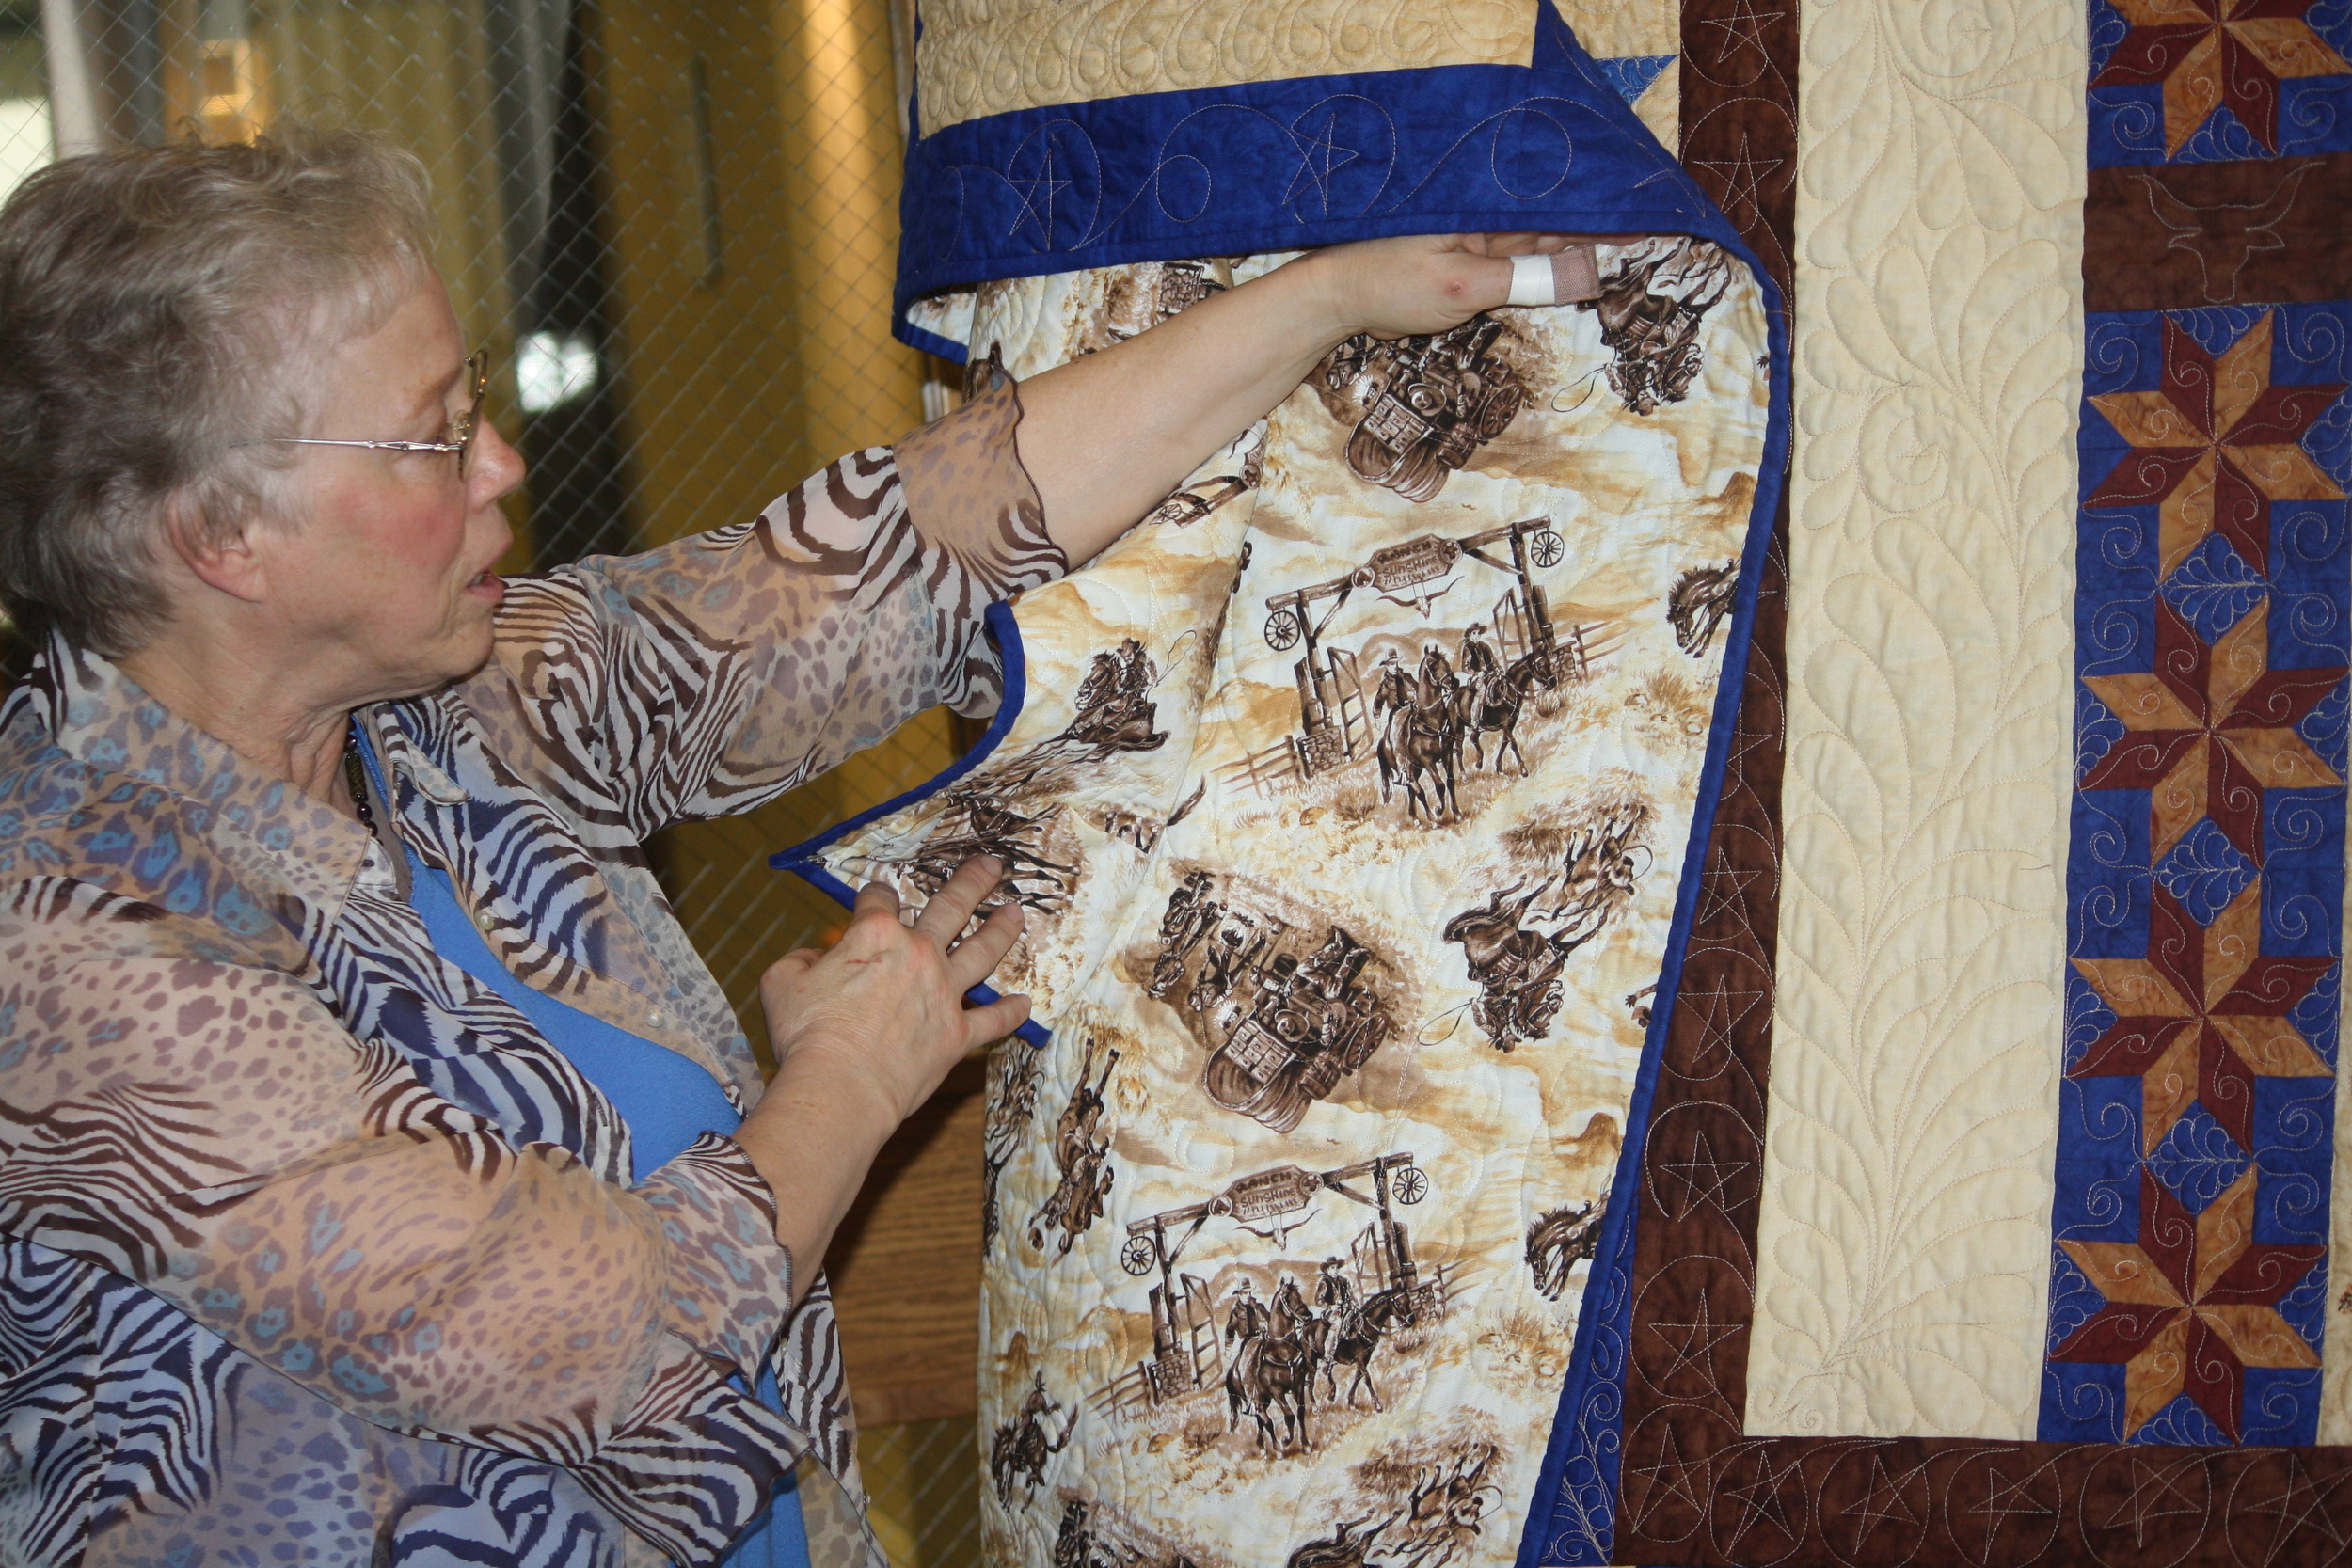 Frances showing the backside of the quilt.